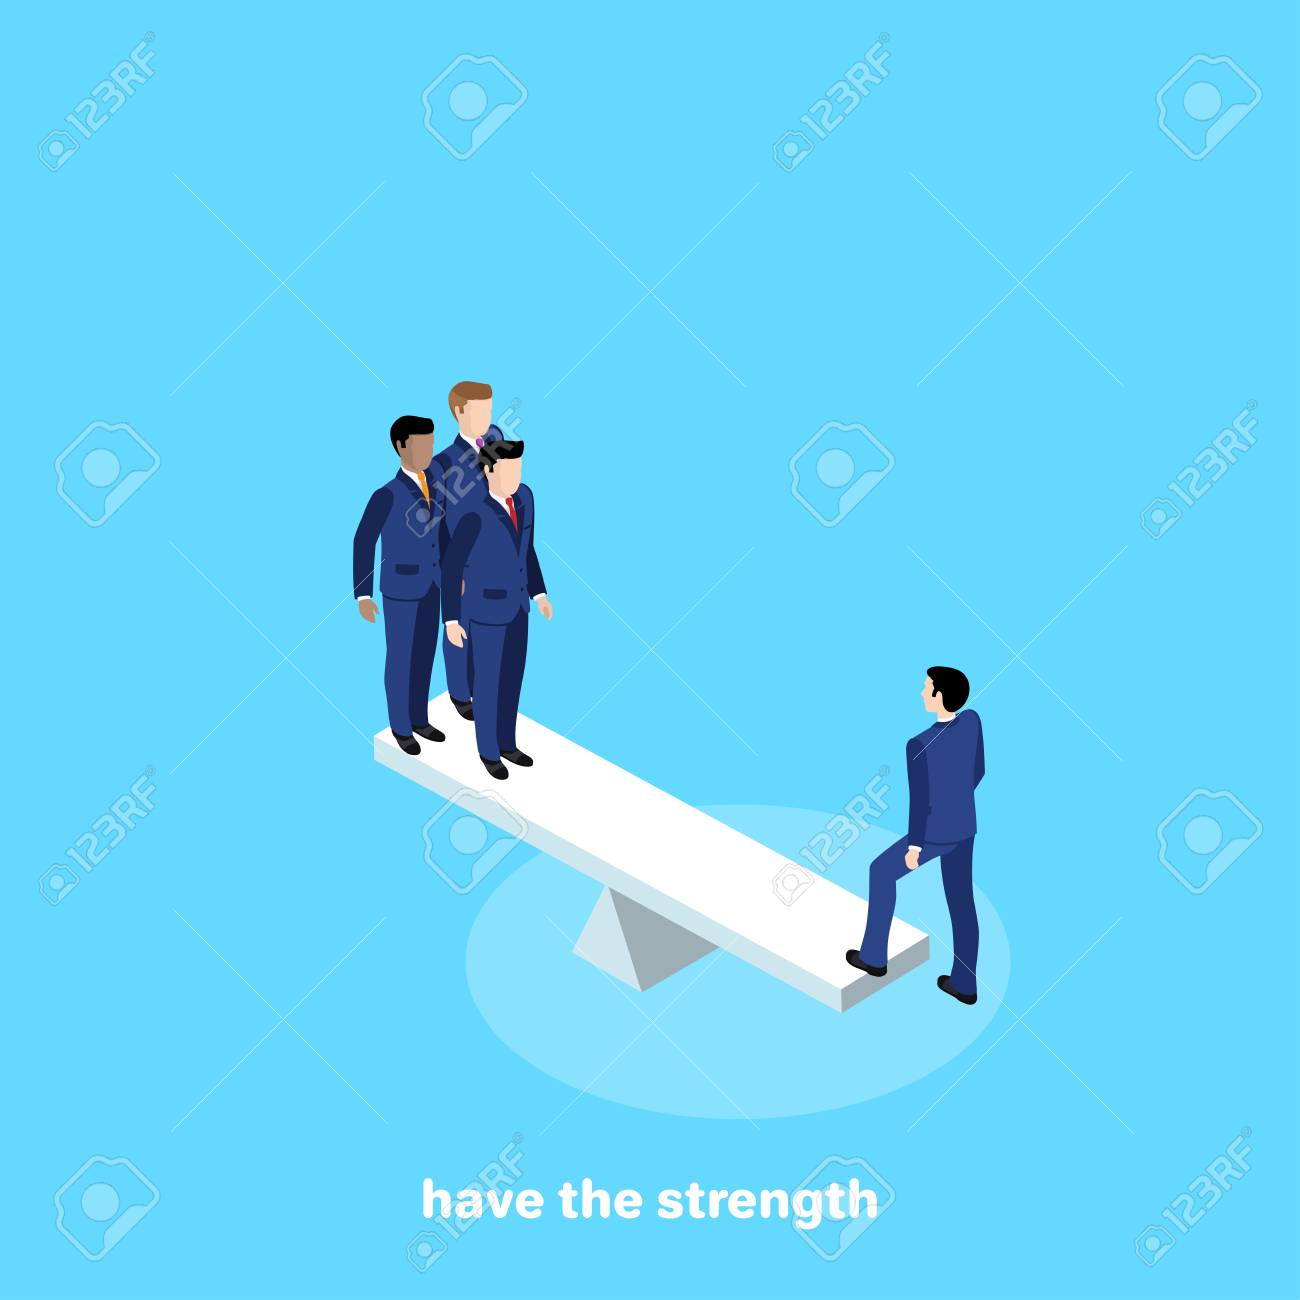 men in business suits stand on scales, isometric image - 109811027